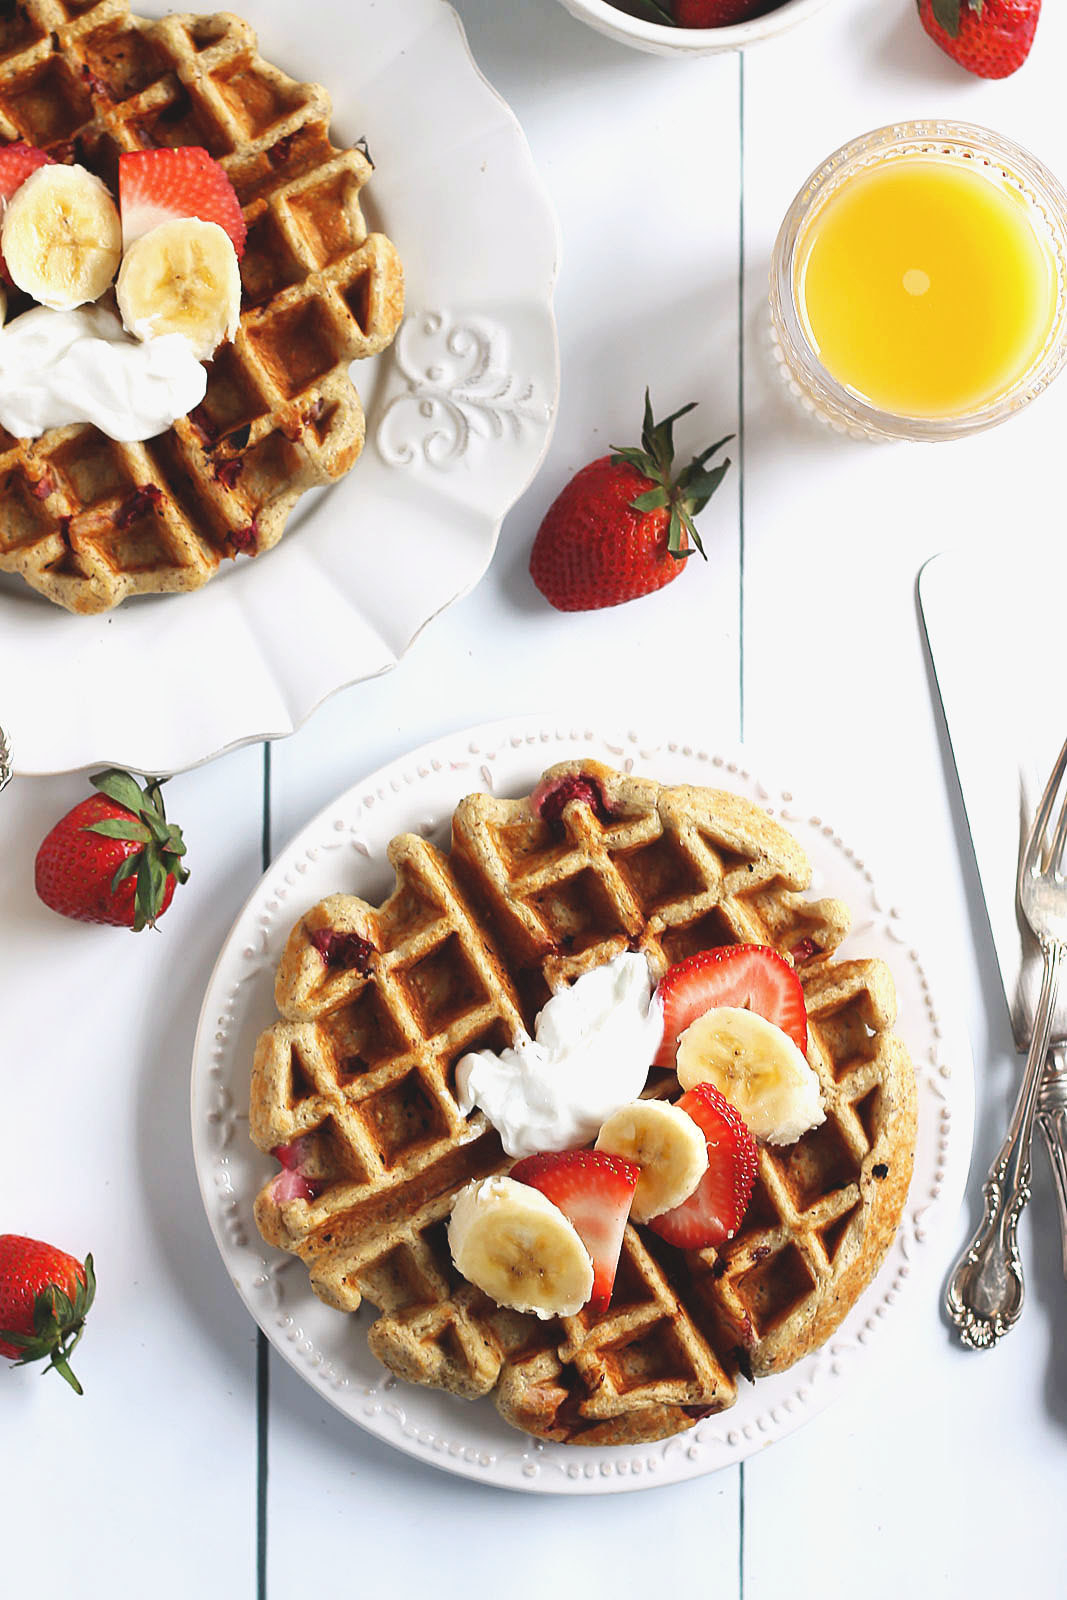 It's Sunday, baby. Go ahead and sleep in. Then treat yourself to waffles made with old fashioned oats, banana, and plain yogurt.